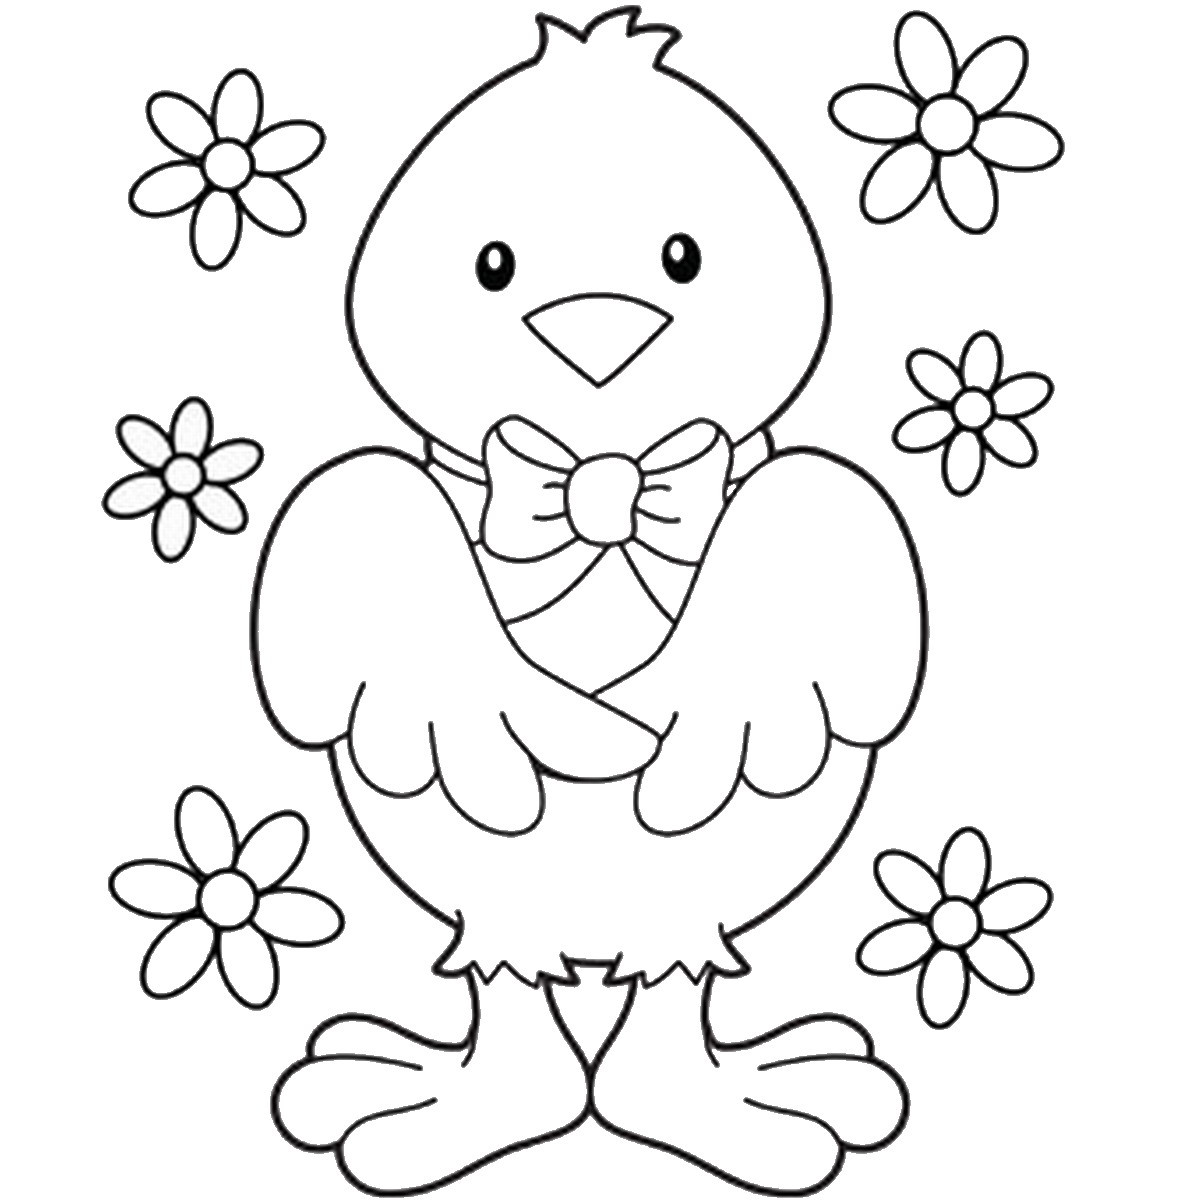 Best ideas about Coloring Pages For Kids For Easter . Save or Pin Easter Coloring Pages Now.